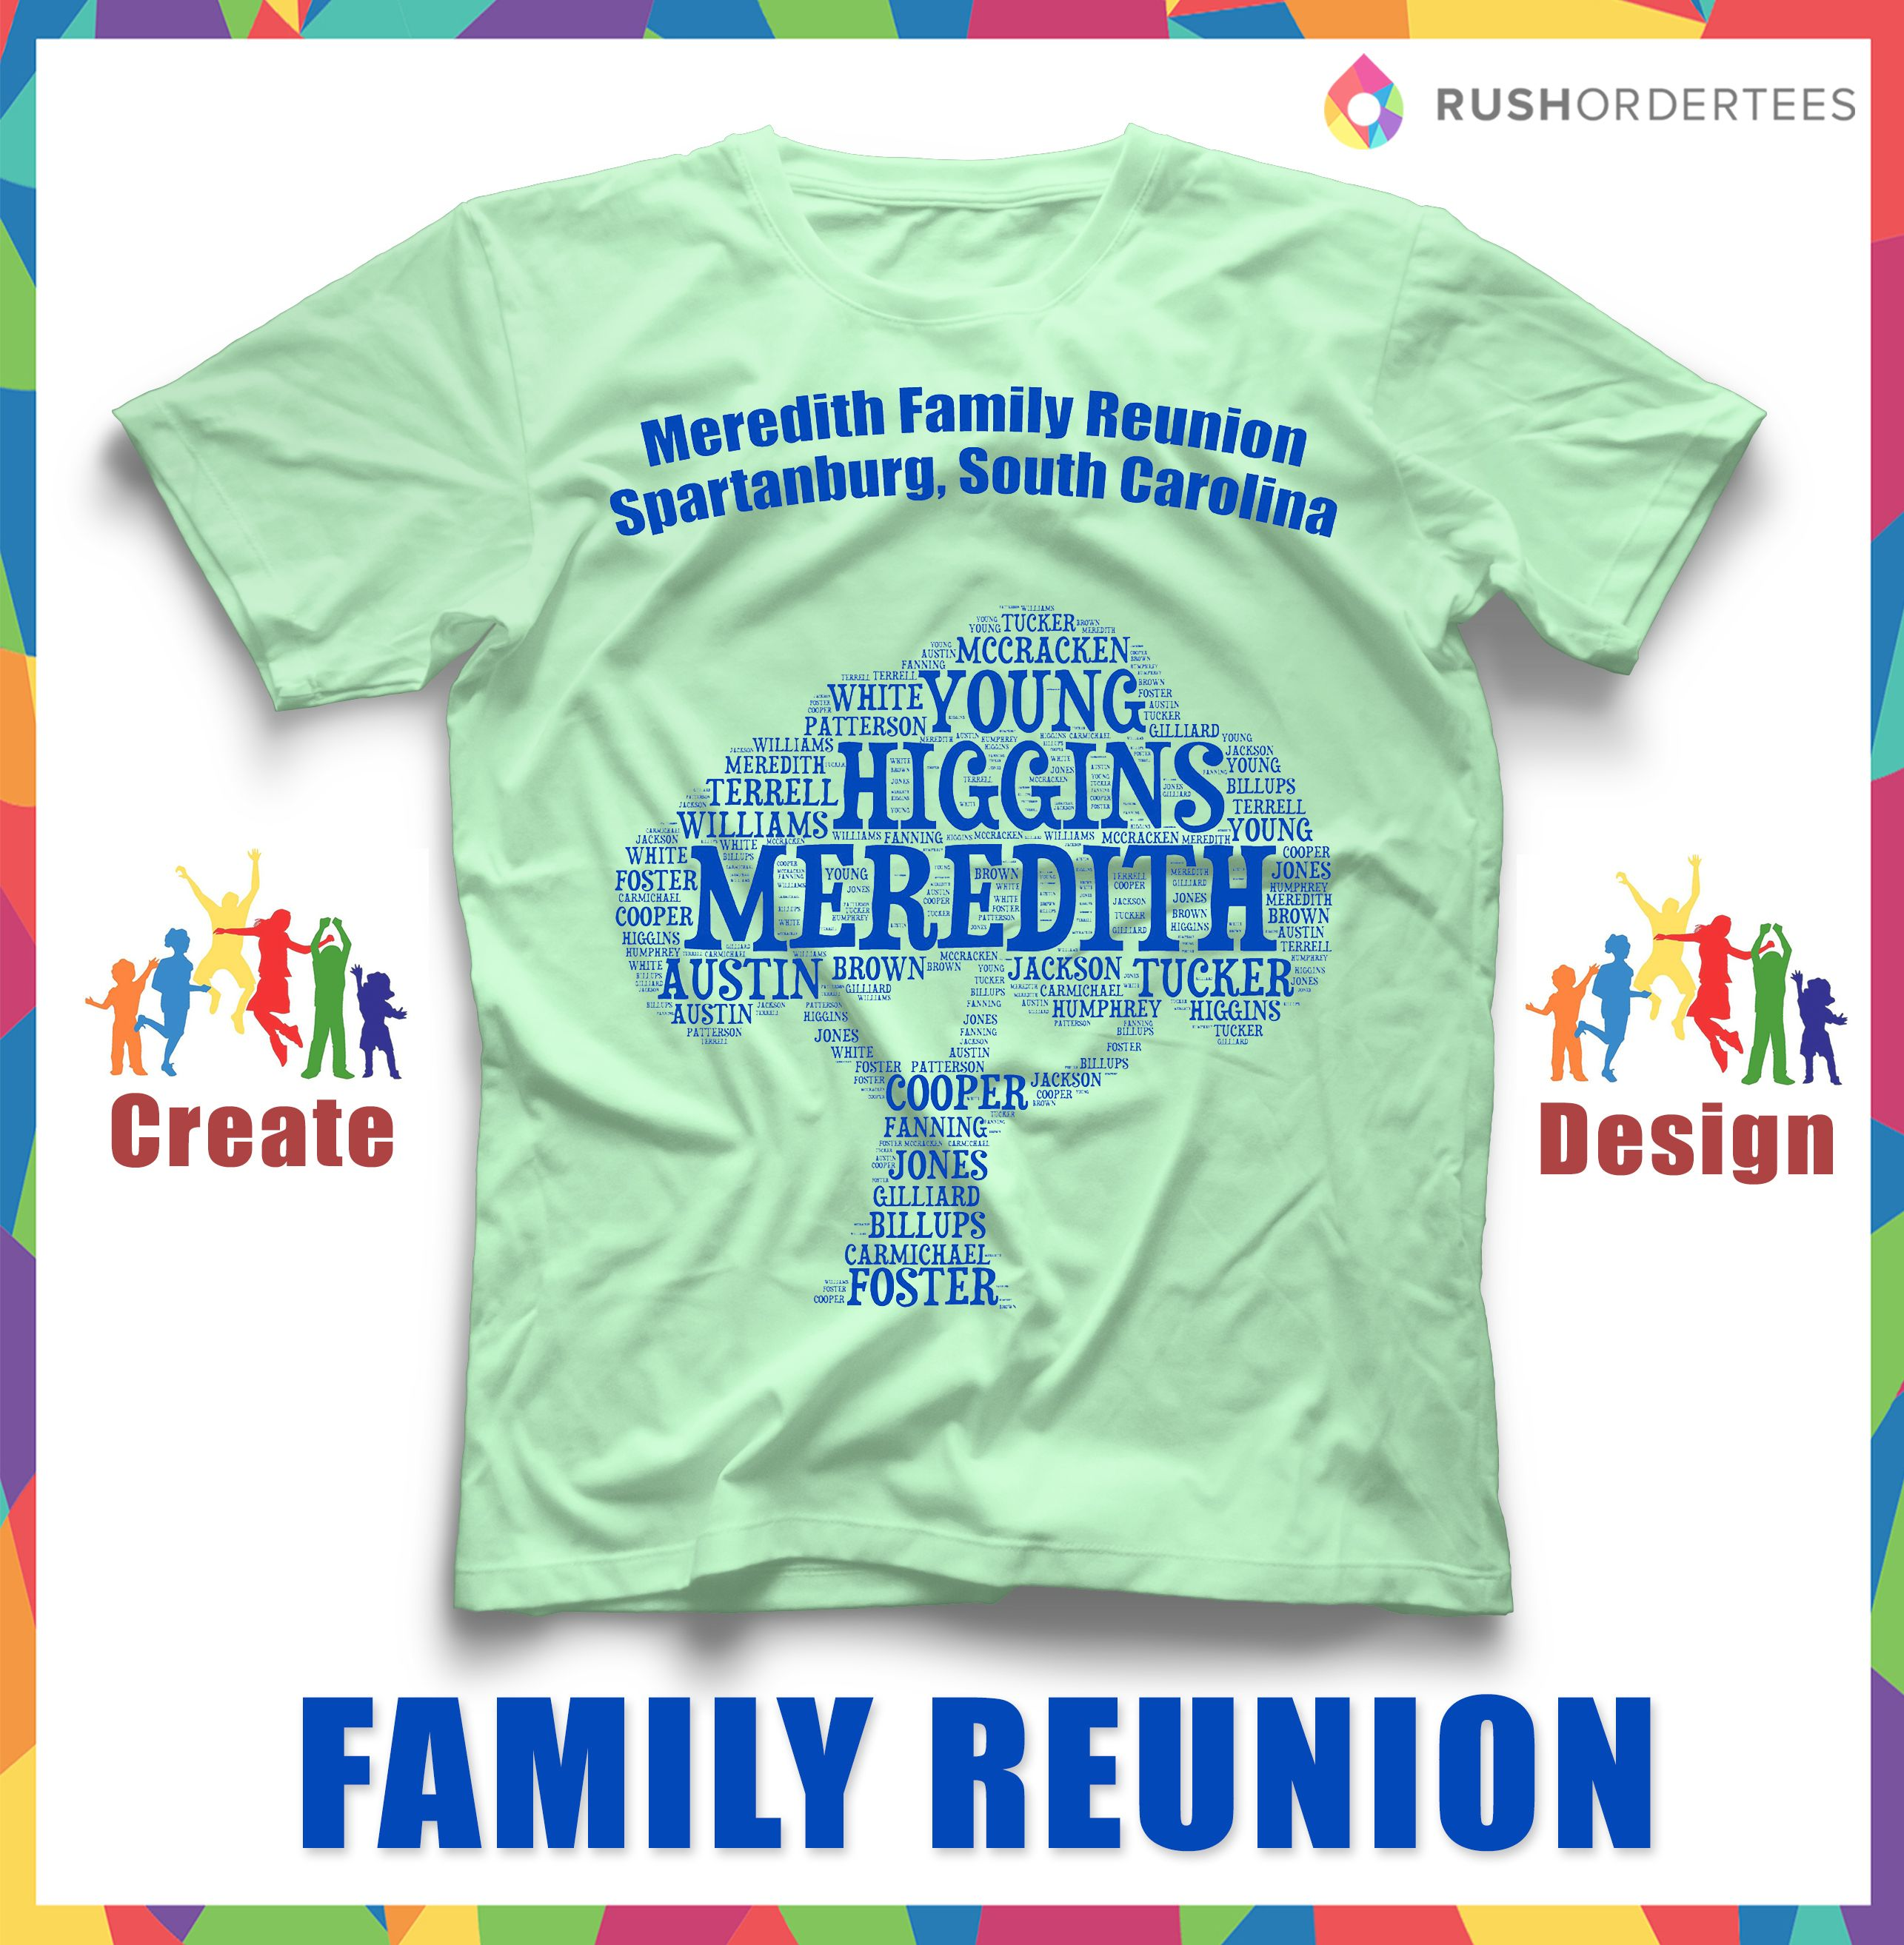 Design your own t-shirt for family reunion - Fast Custom Reunion T Shirts Online Create Your Personalized Design With Our Design Studio Easy To Use Templates Or Let Us Design For Free